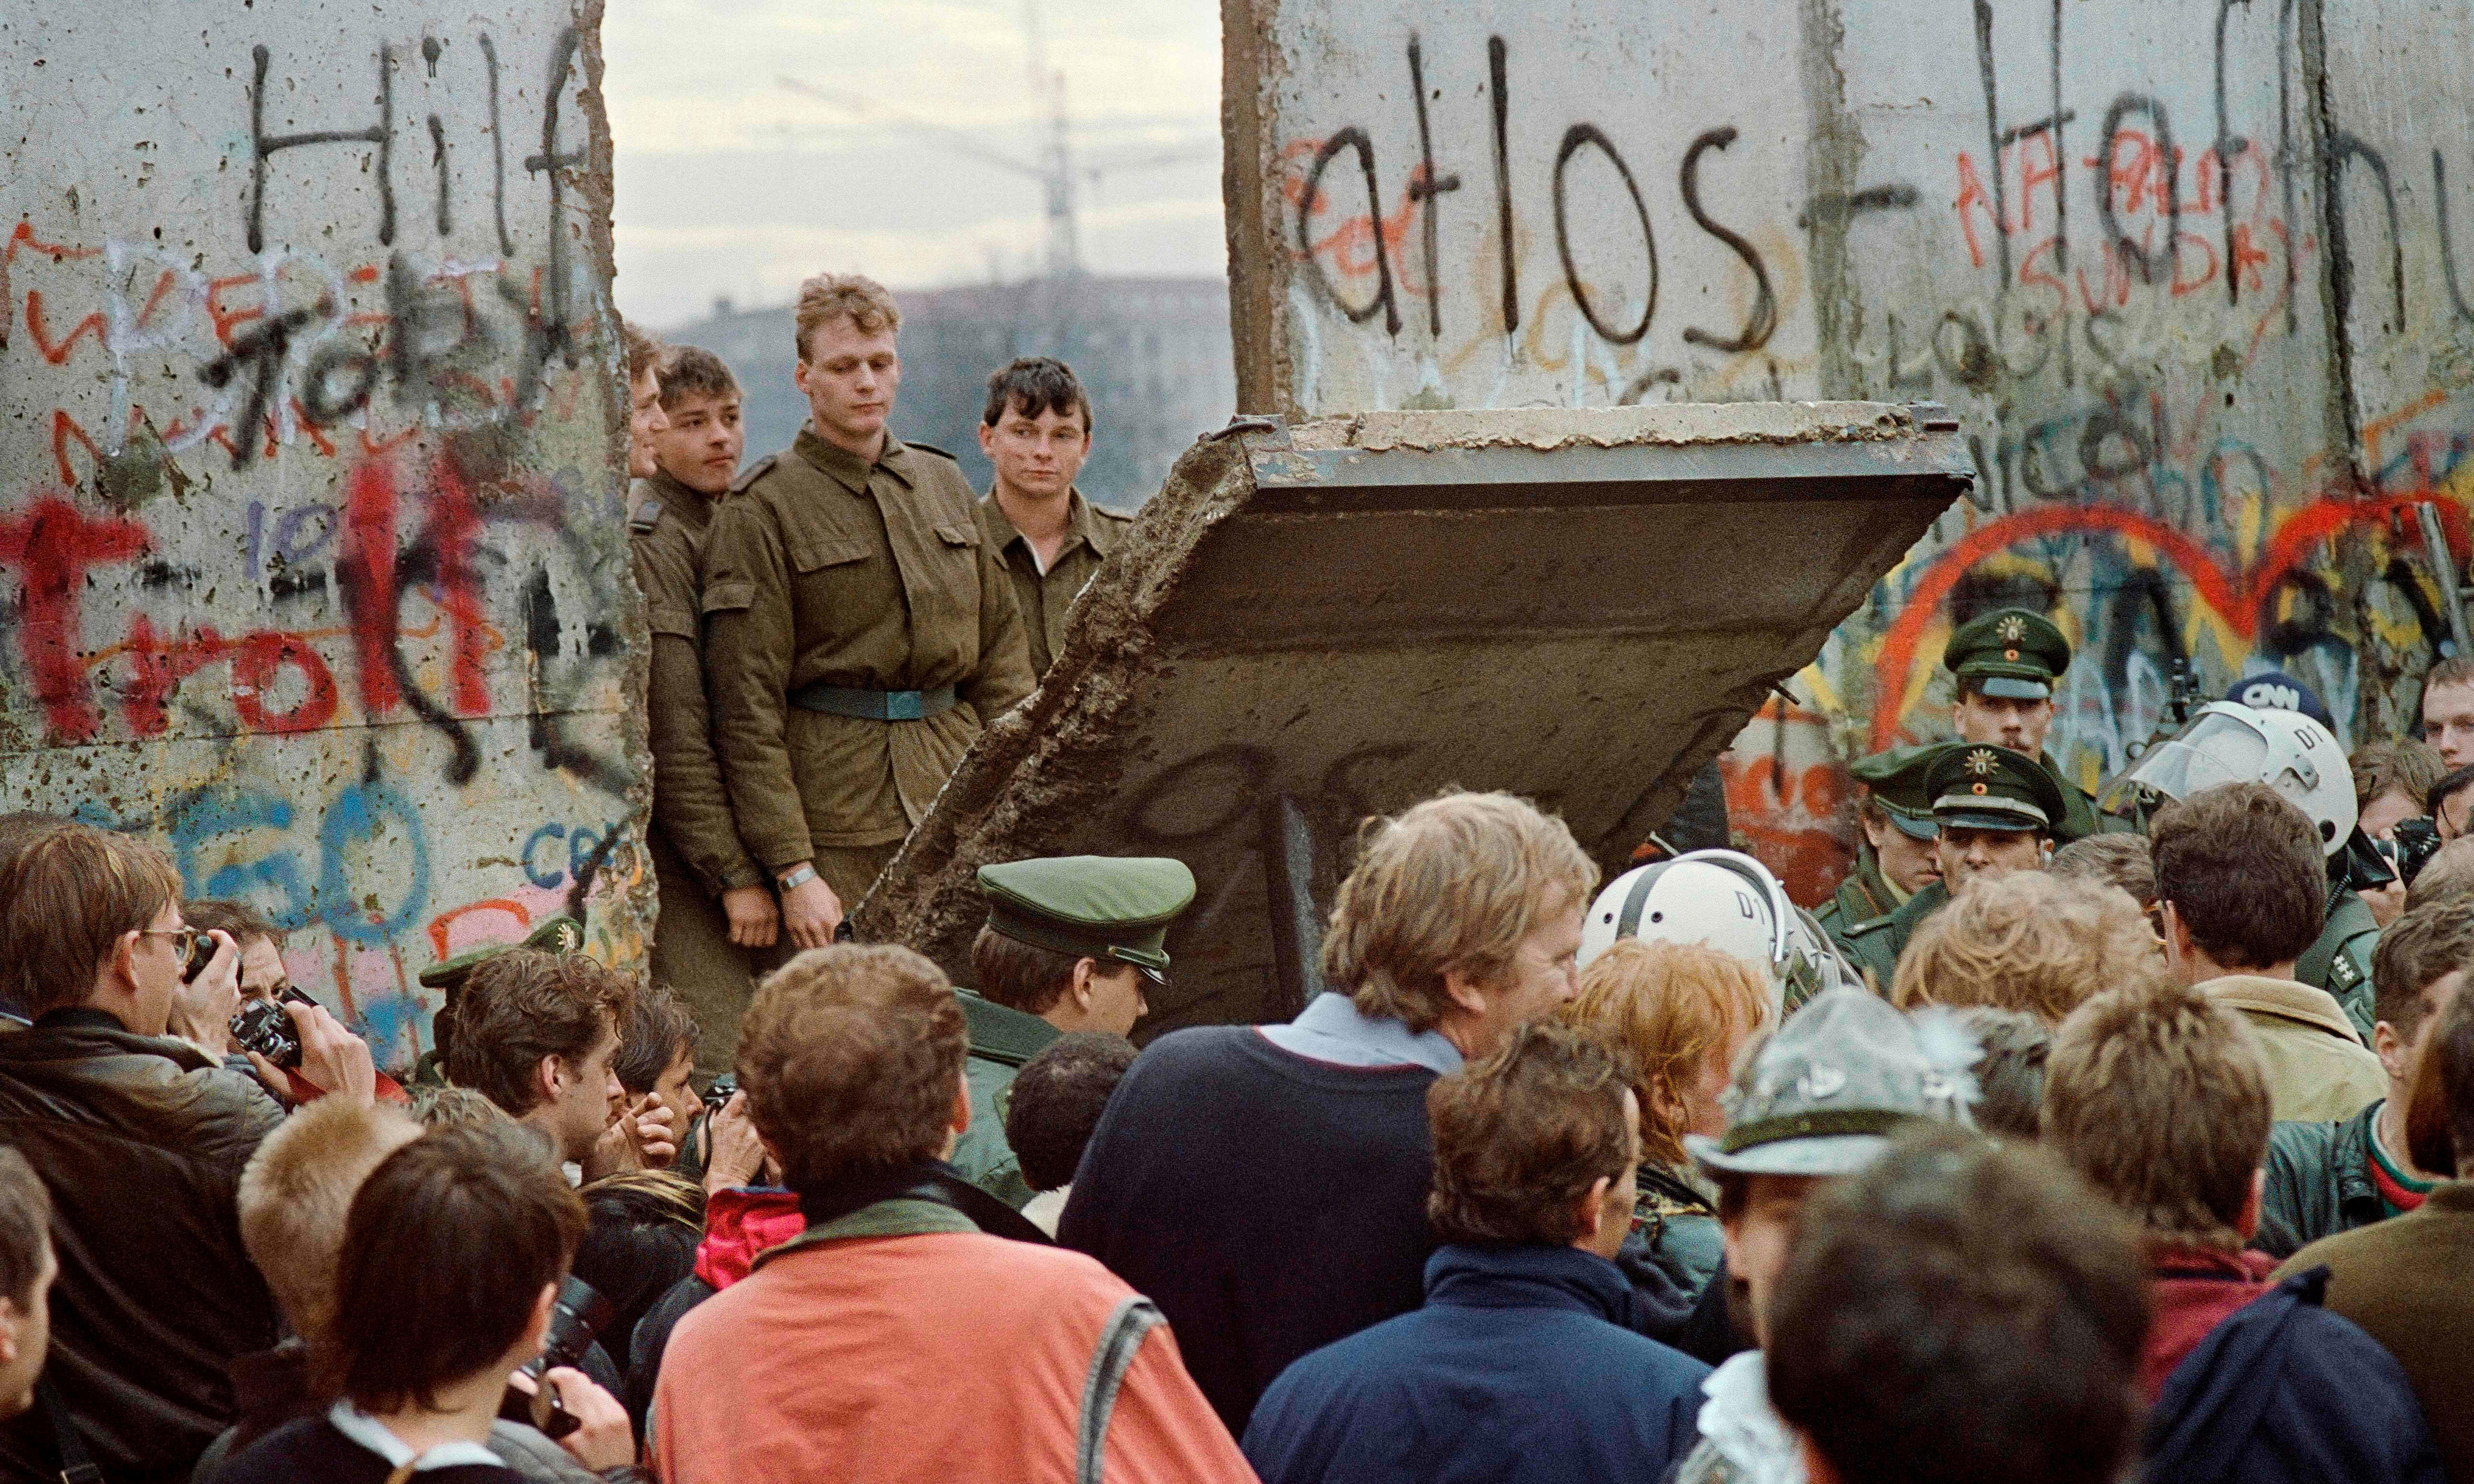 30 years after communism, eastern Europe divided on democracy's impact